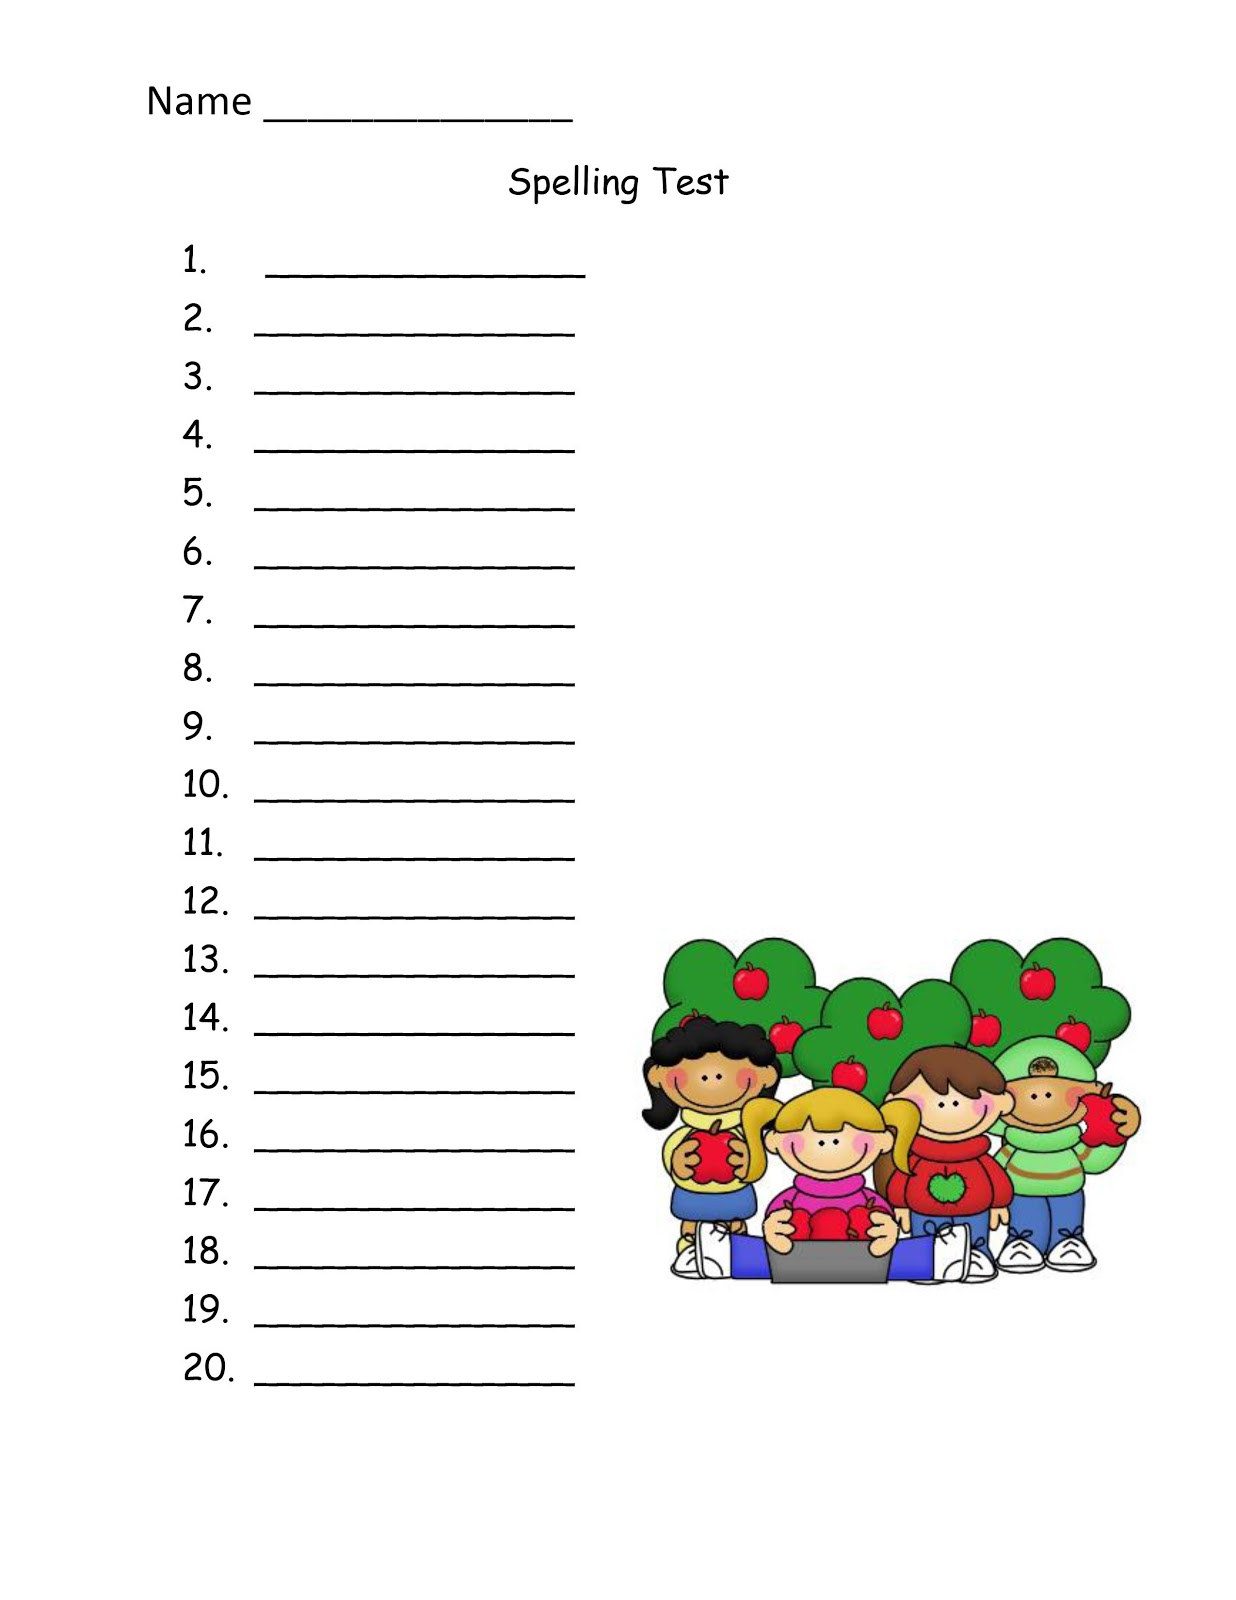 Second grade is groovy spelling sale for Free printable spelling test template